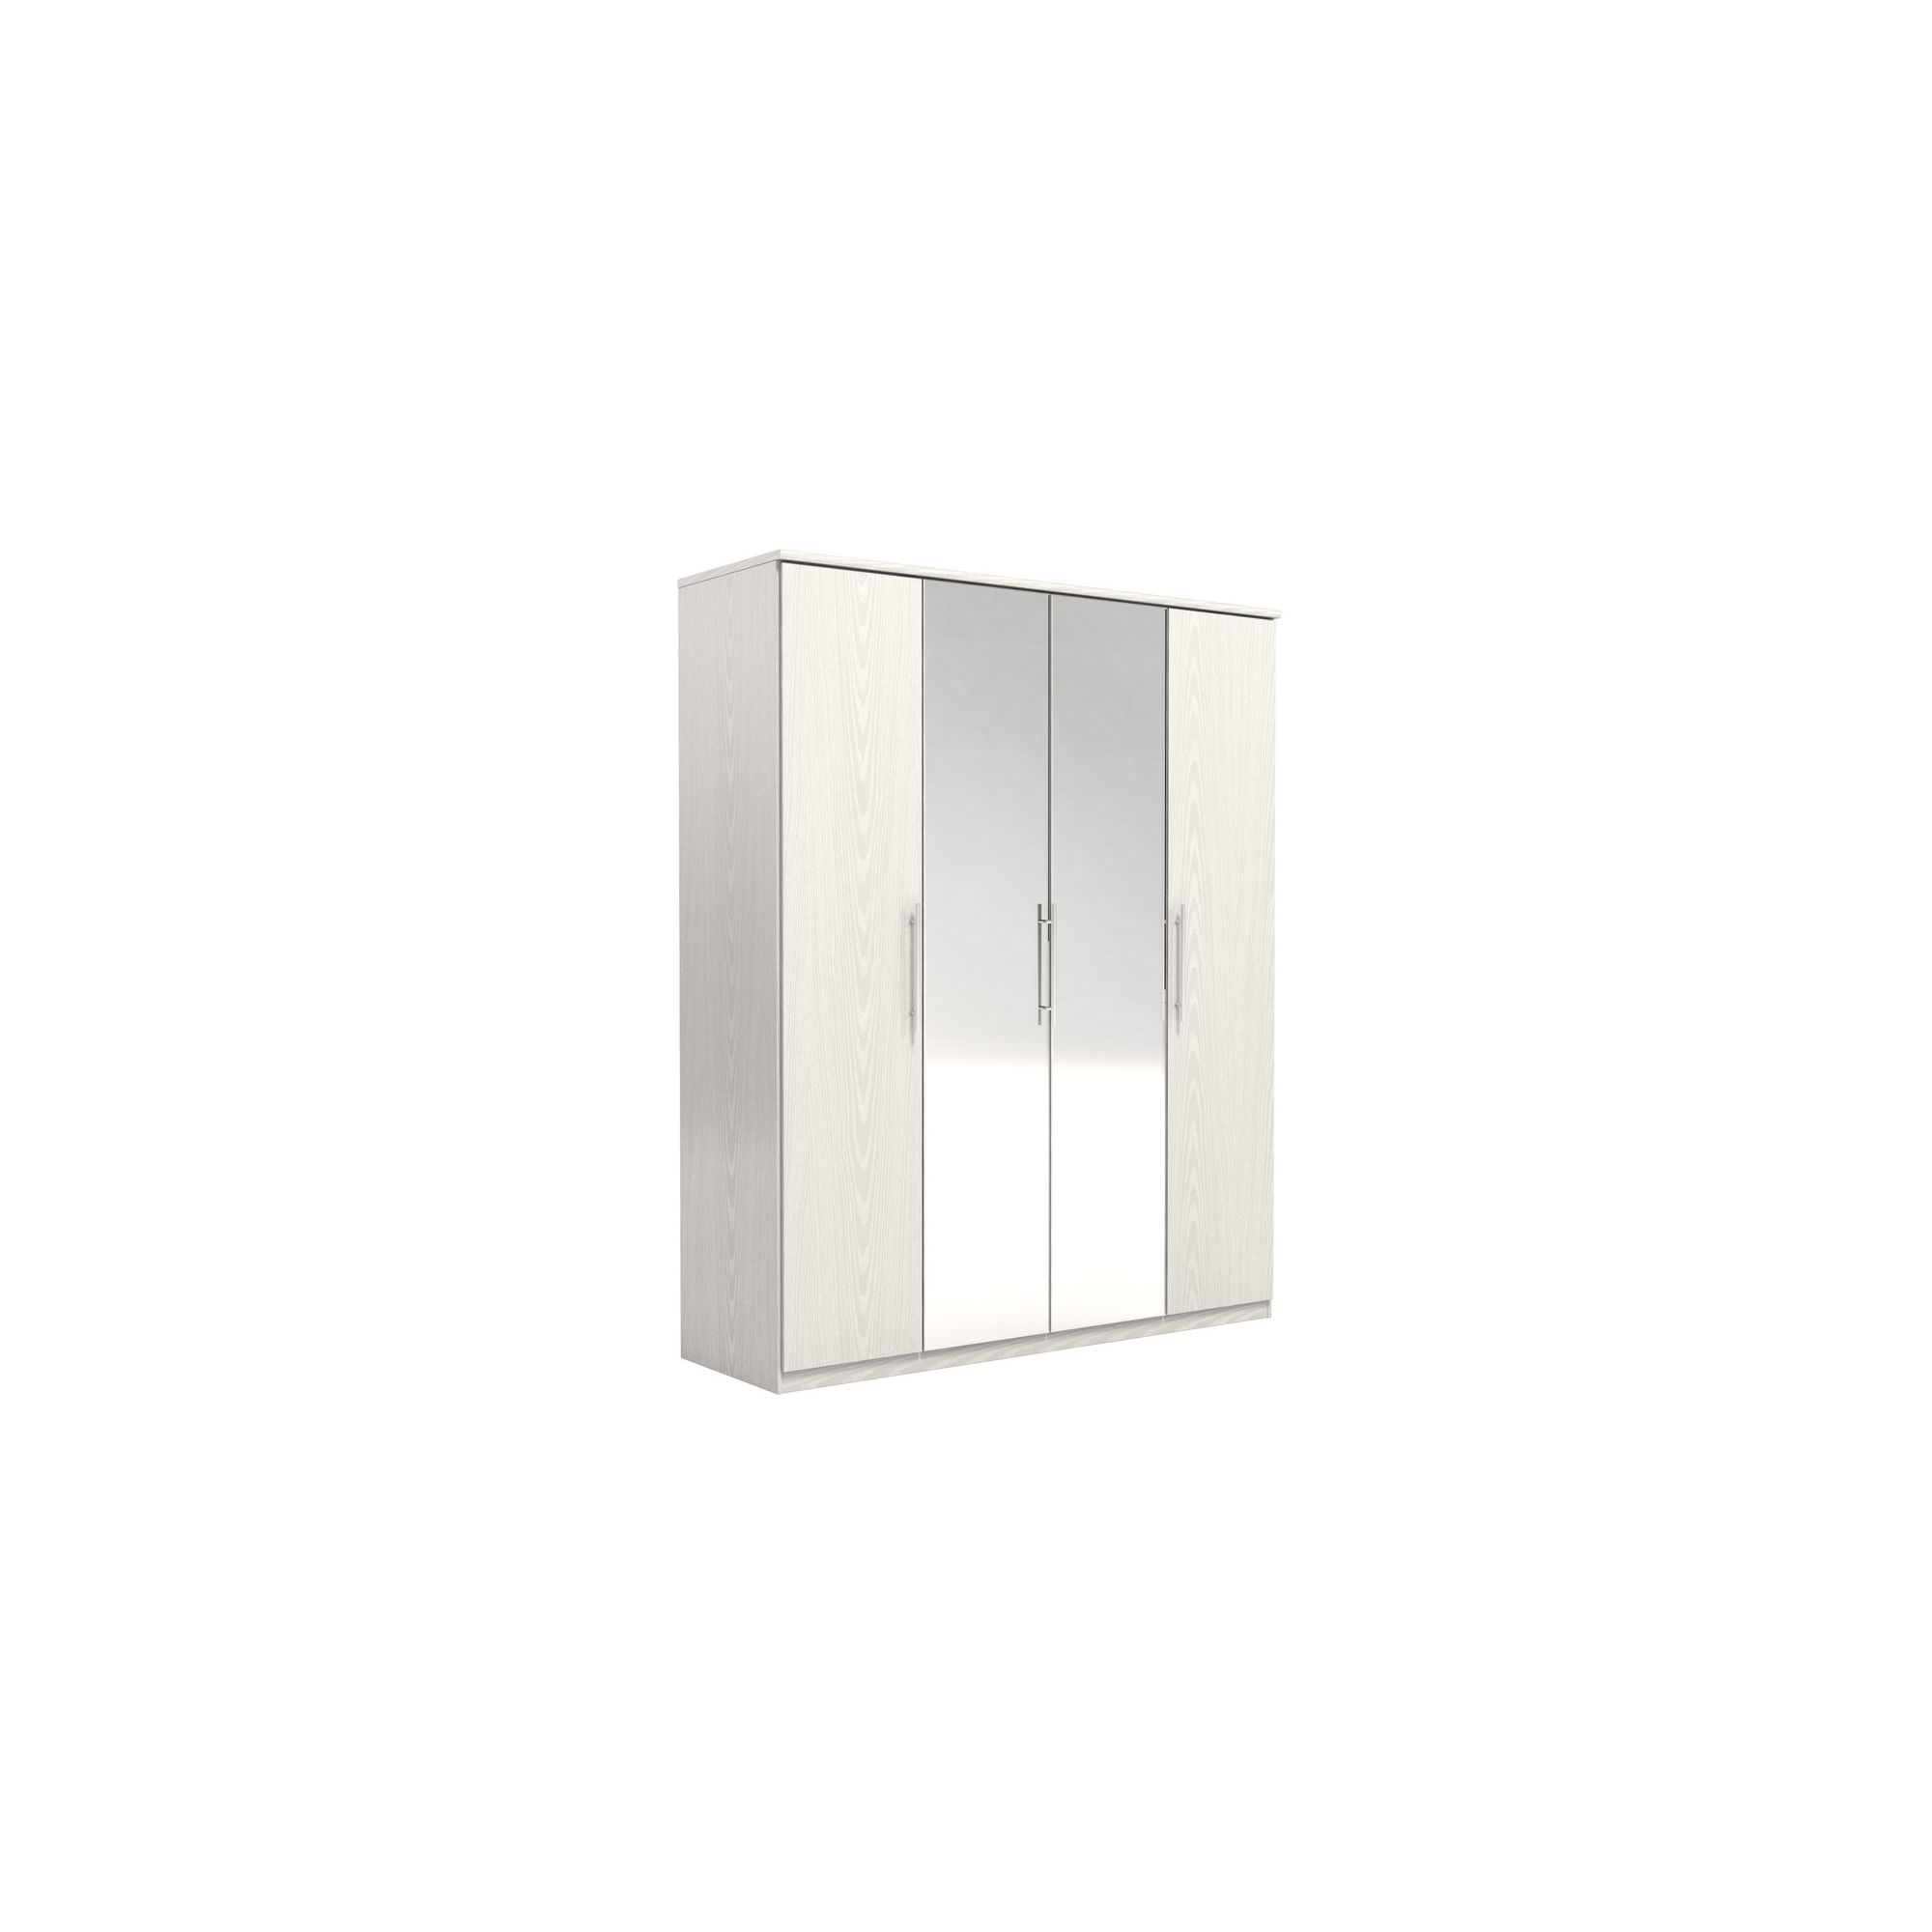 Urbane Designs Prague 4 Door Wardrobe - White at Tesco Direct